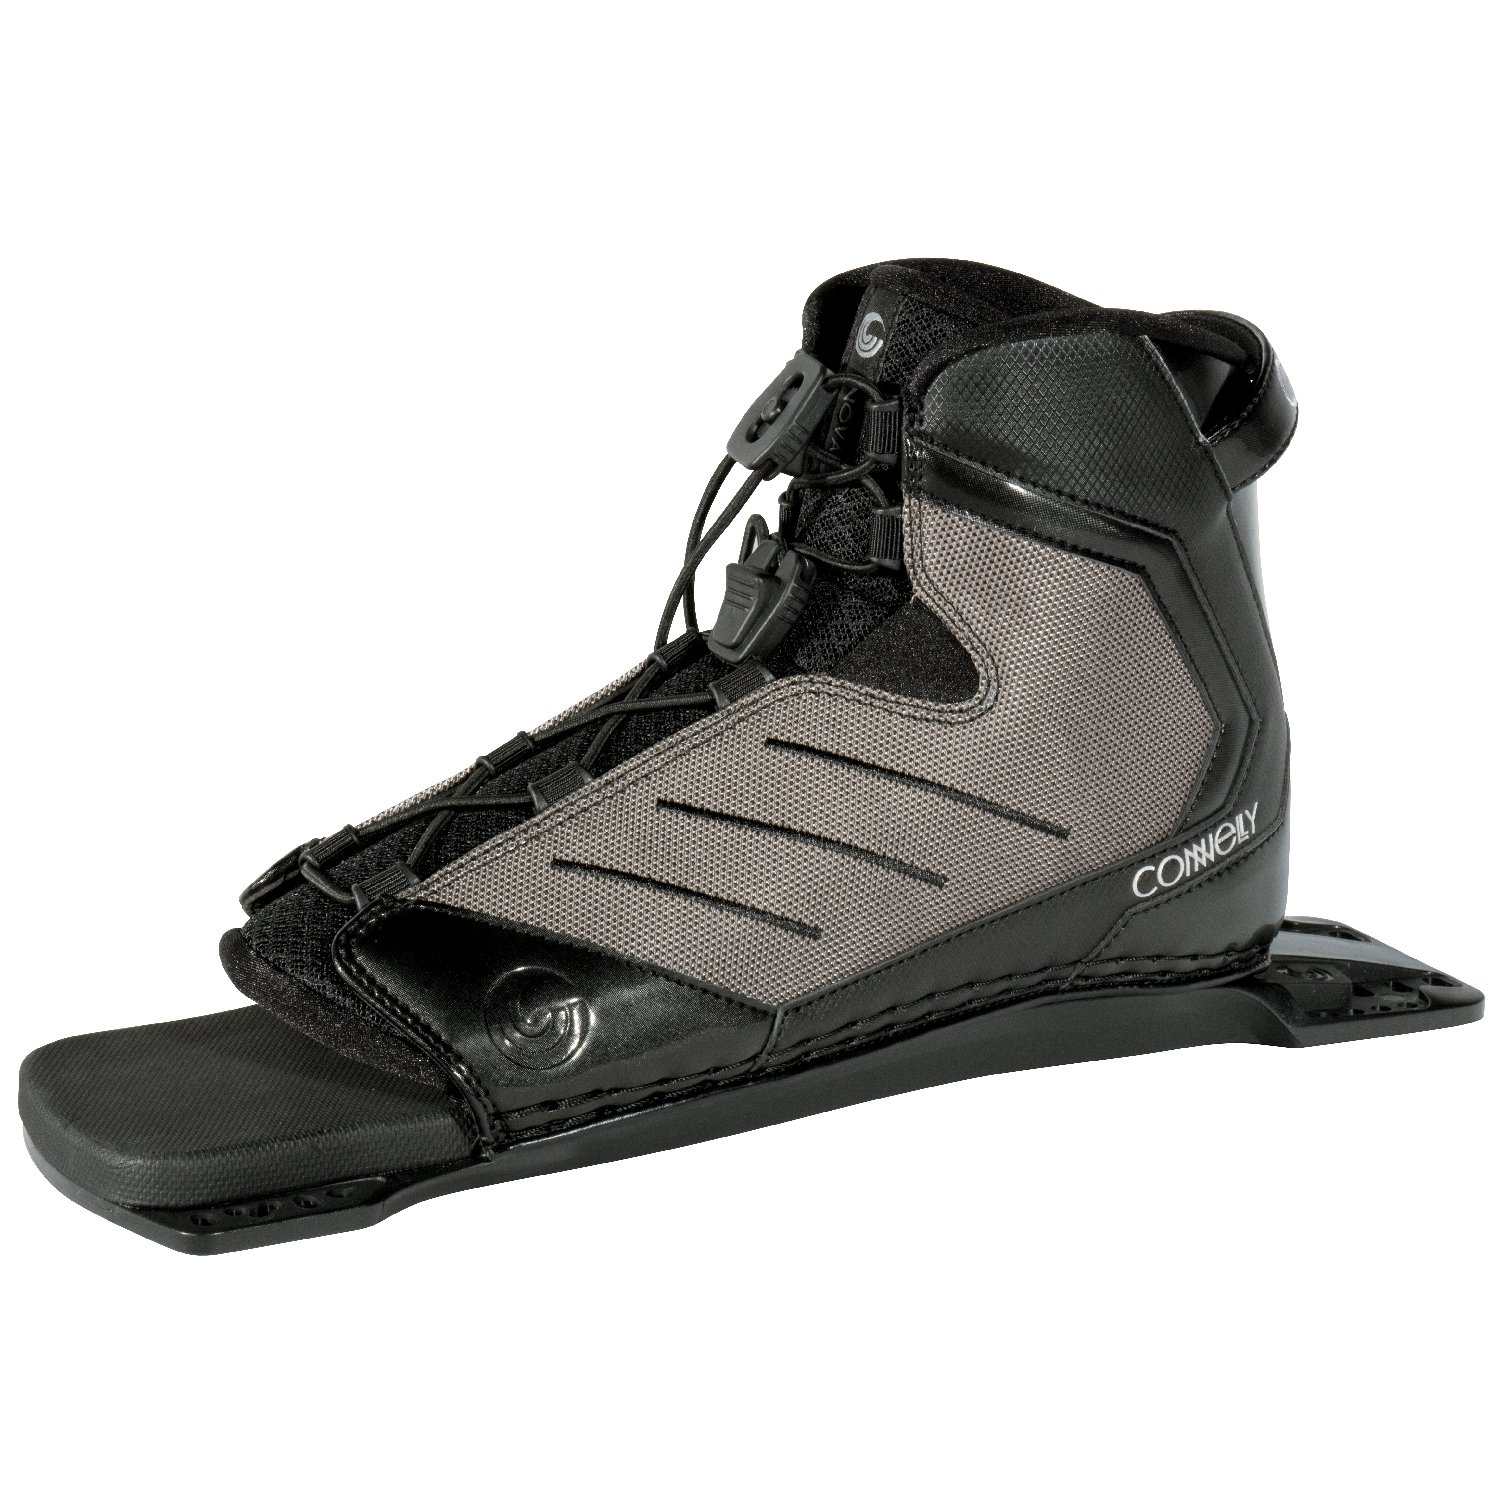 Connelly Shadow Rear Waterski Binding (S/M) by Connelly (Image #1)